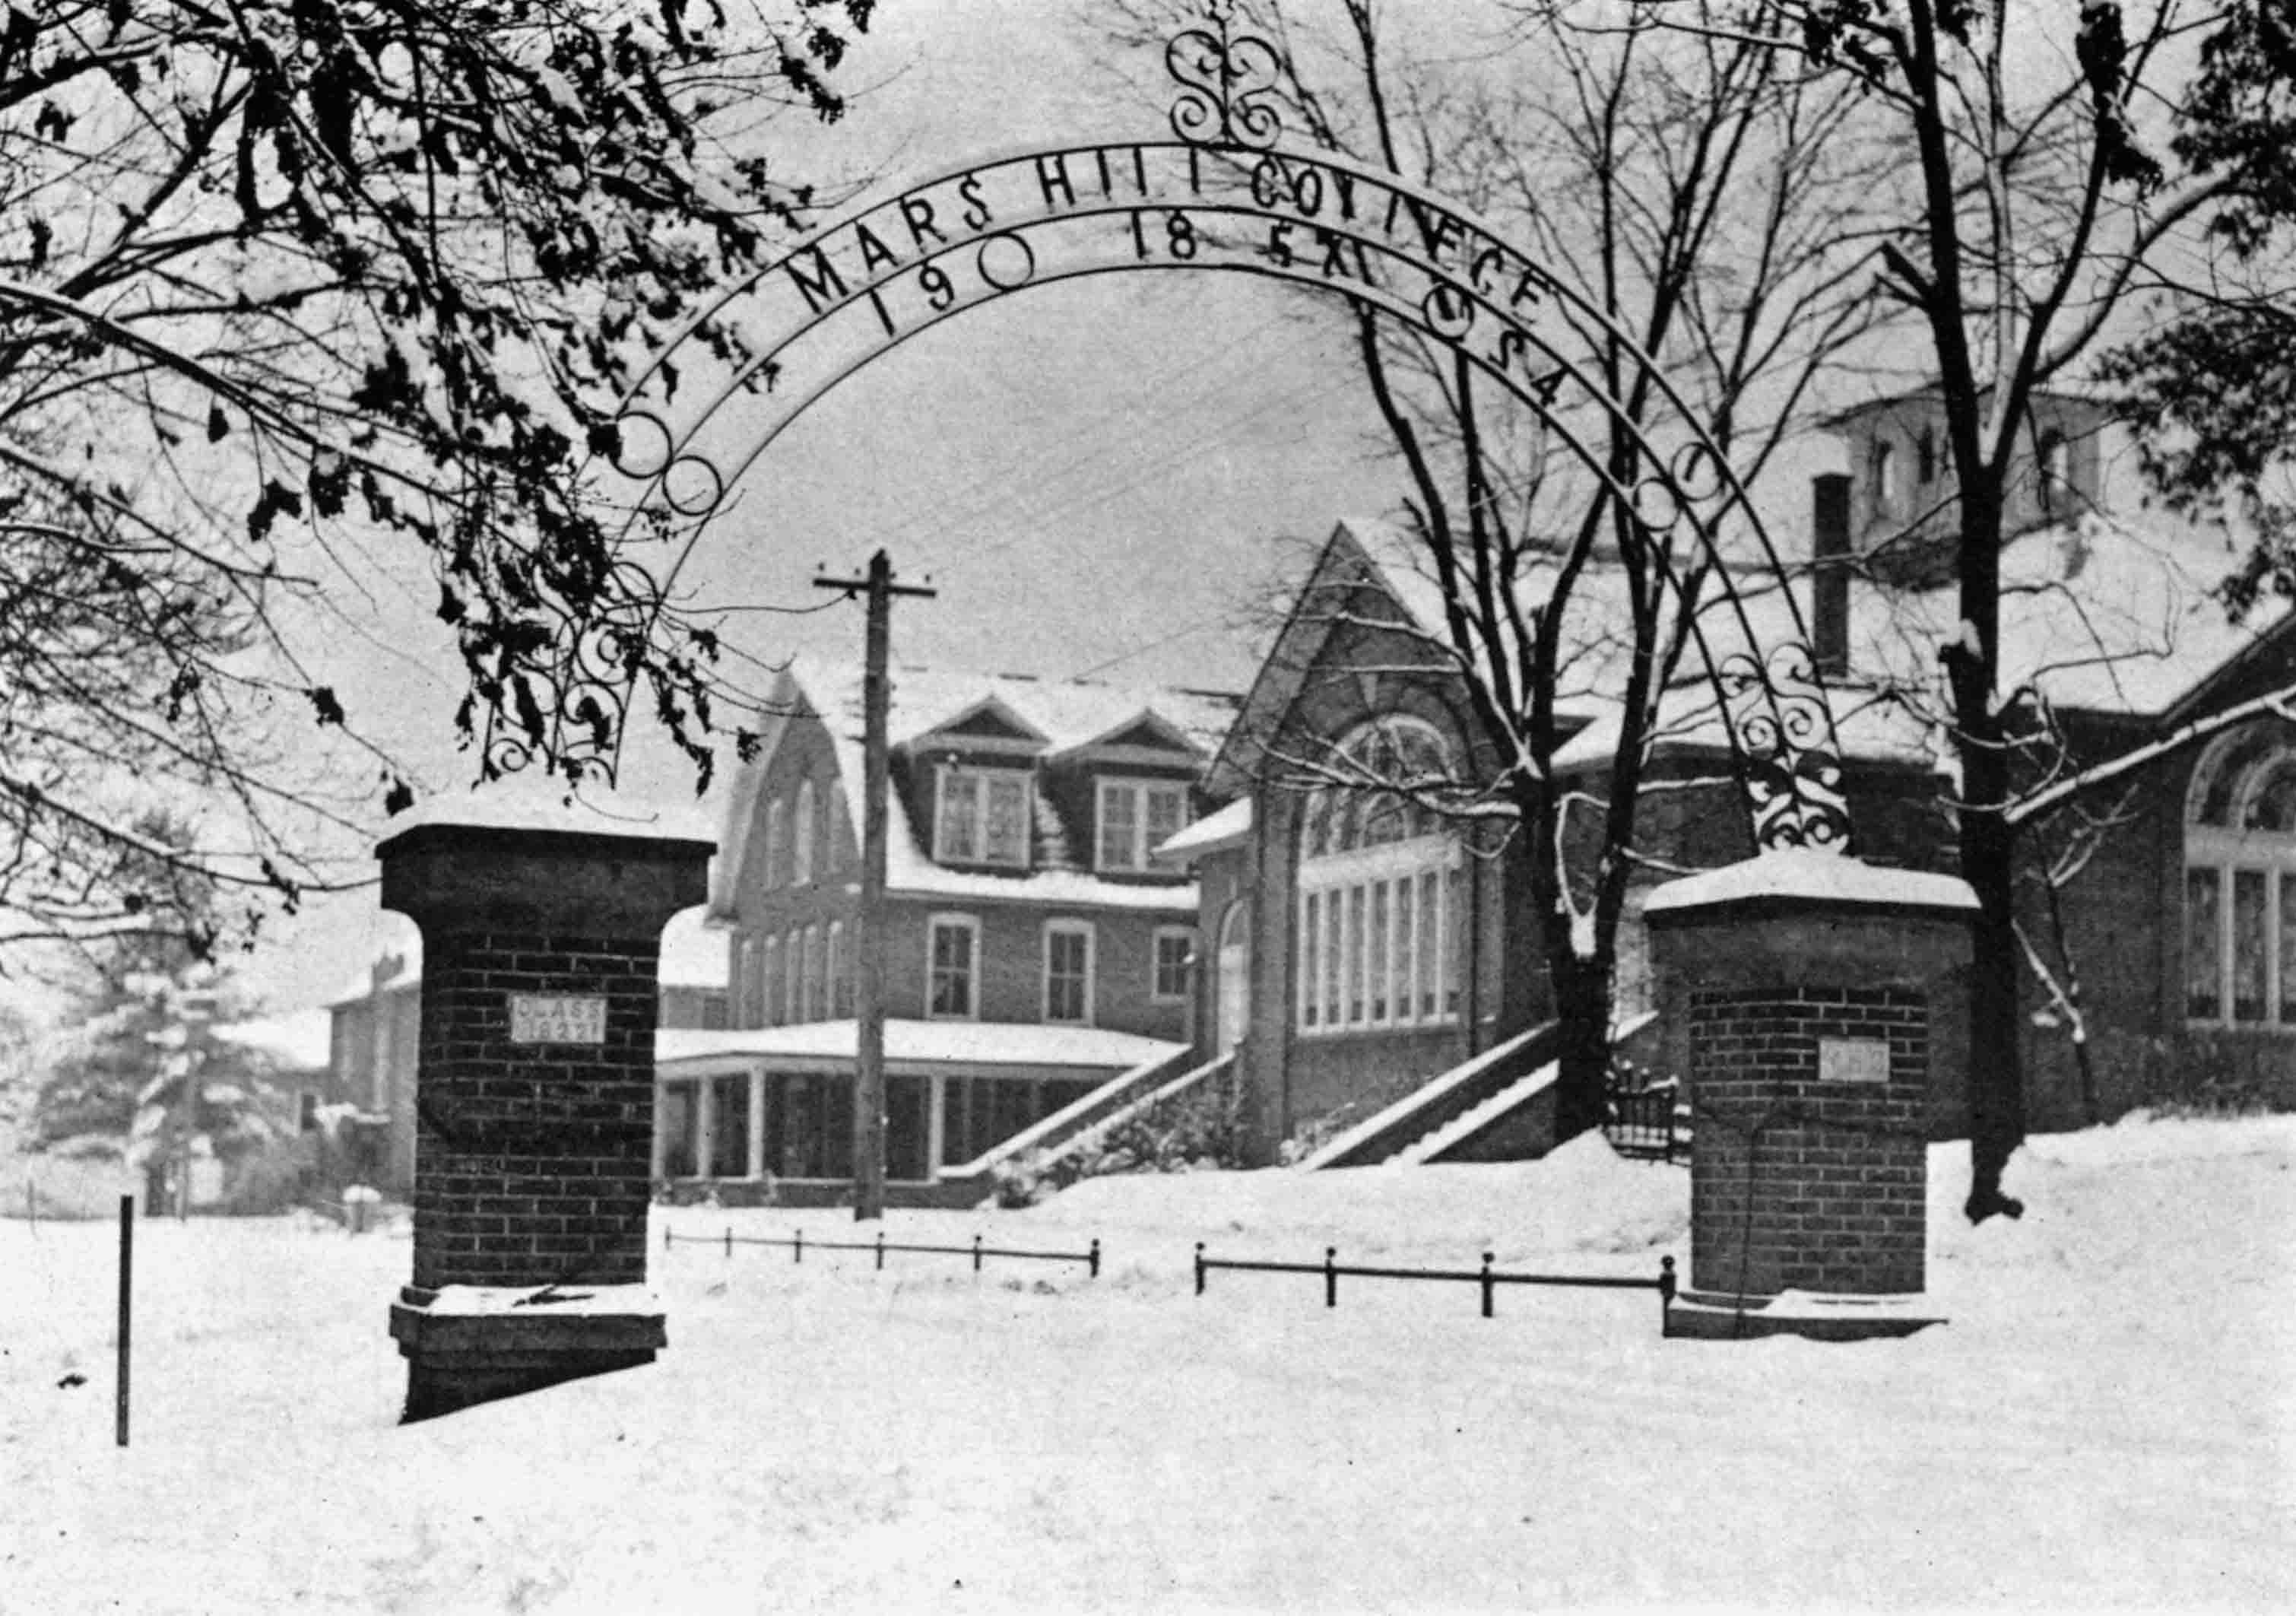 View of College Street from the Old East Gate, 1930. Spilman Hall can be seen next to Owen Theatre